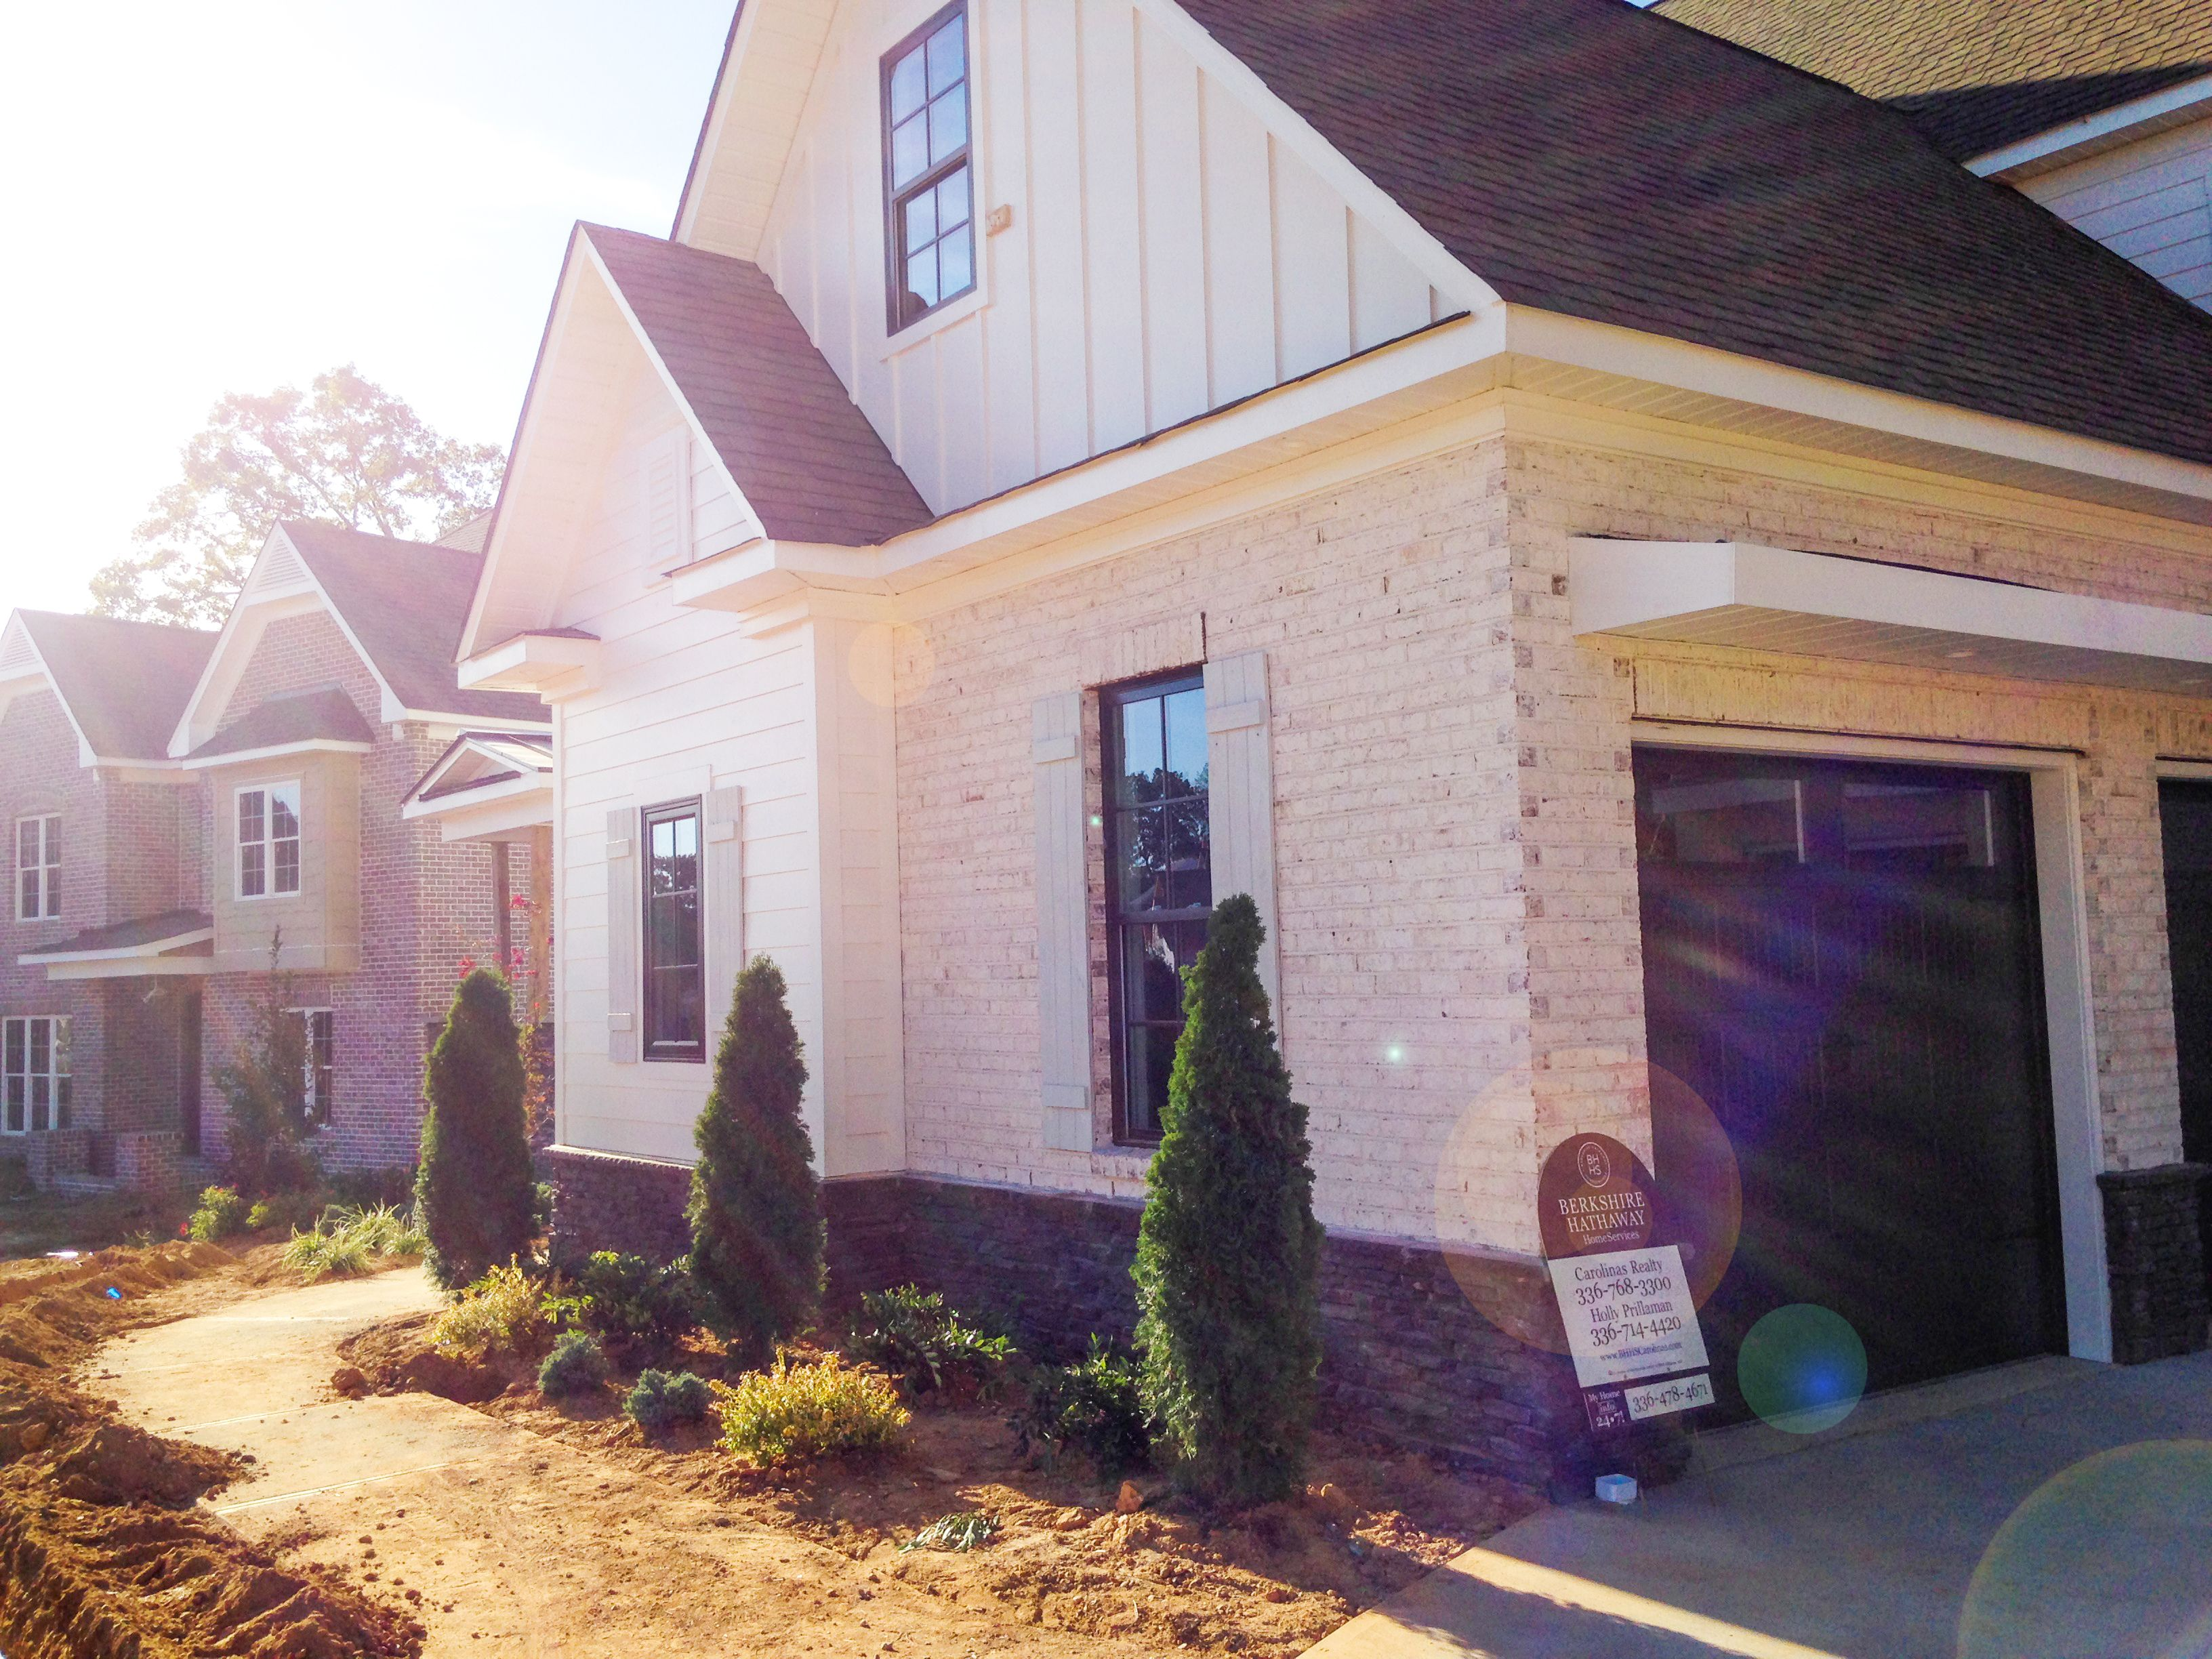 New Villa Chase Brick Exterior With Brown Trim Looks Inviting